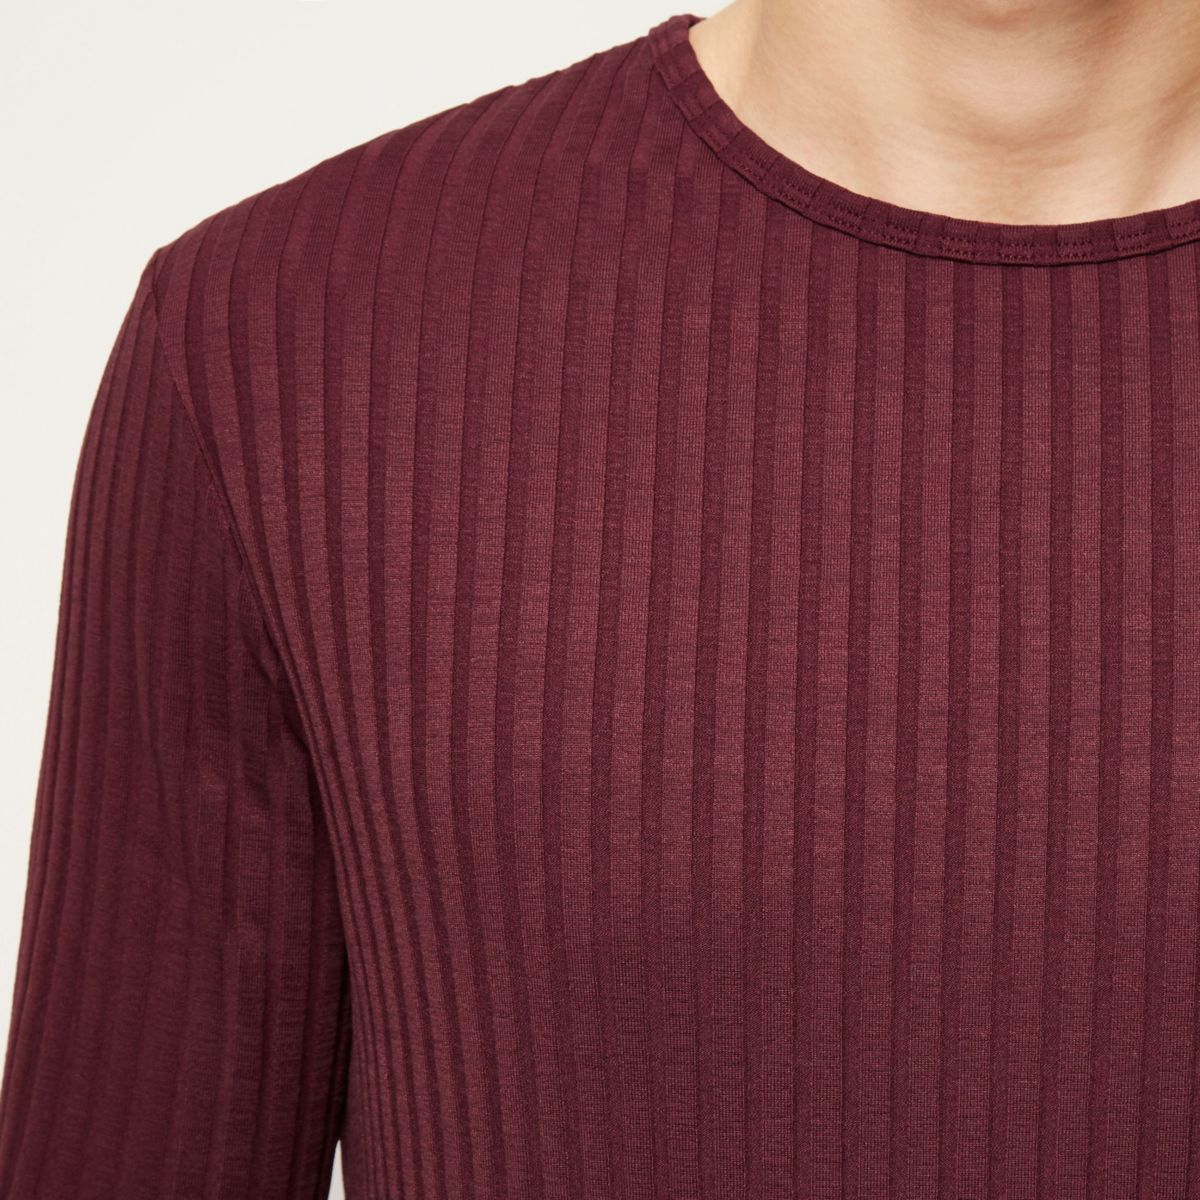 Burgundy chunky ribbed slim fit top